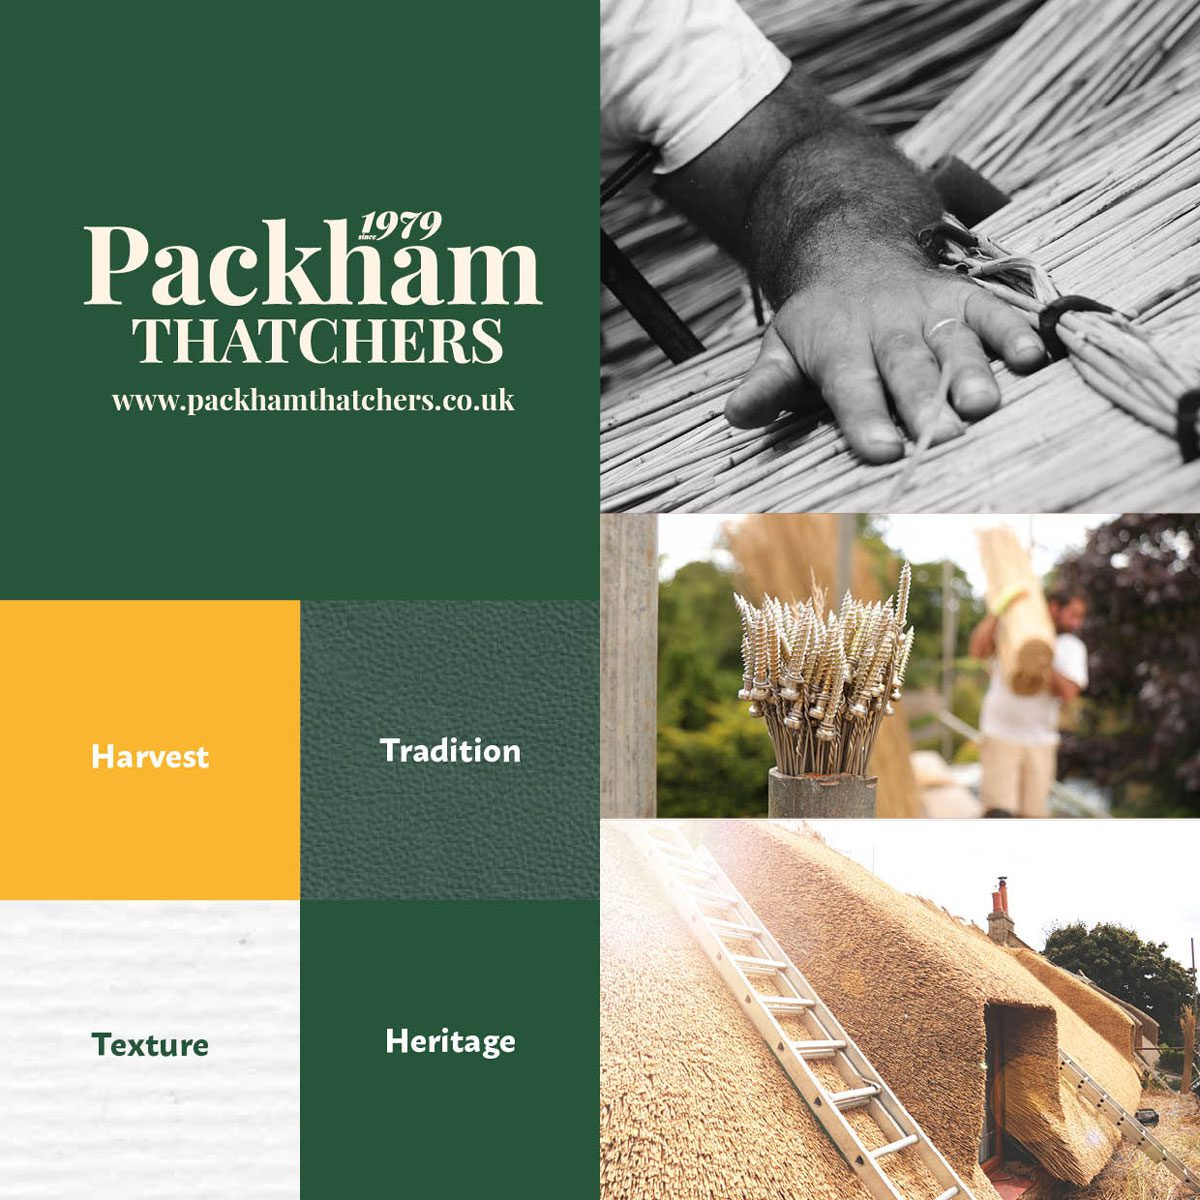 Packham Thatchers Brand Colours and Textures